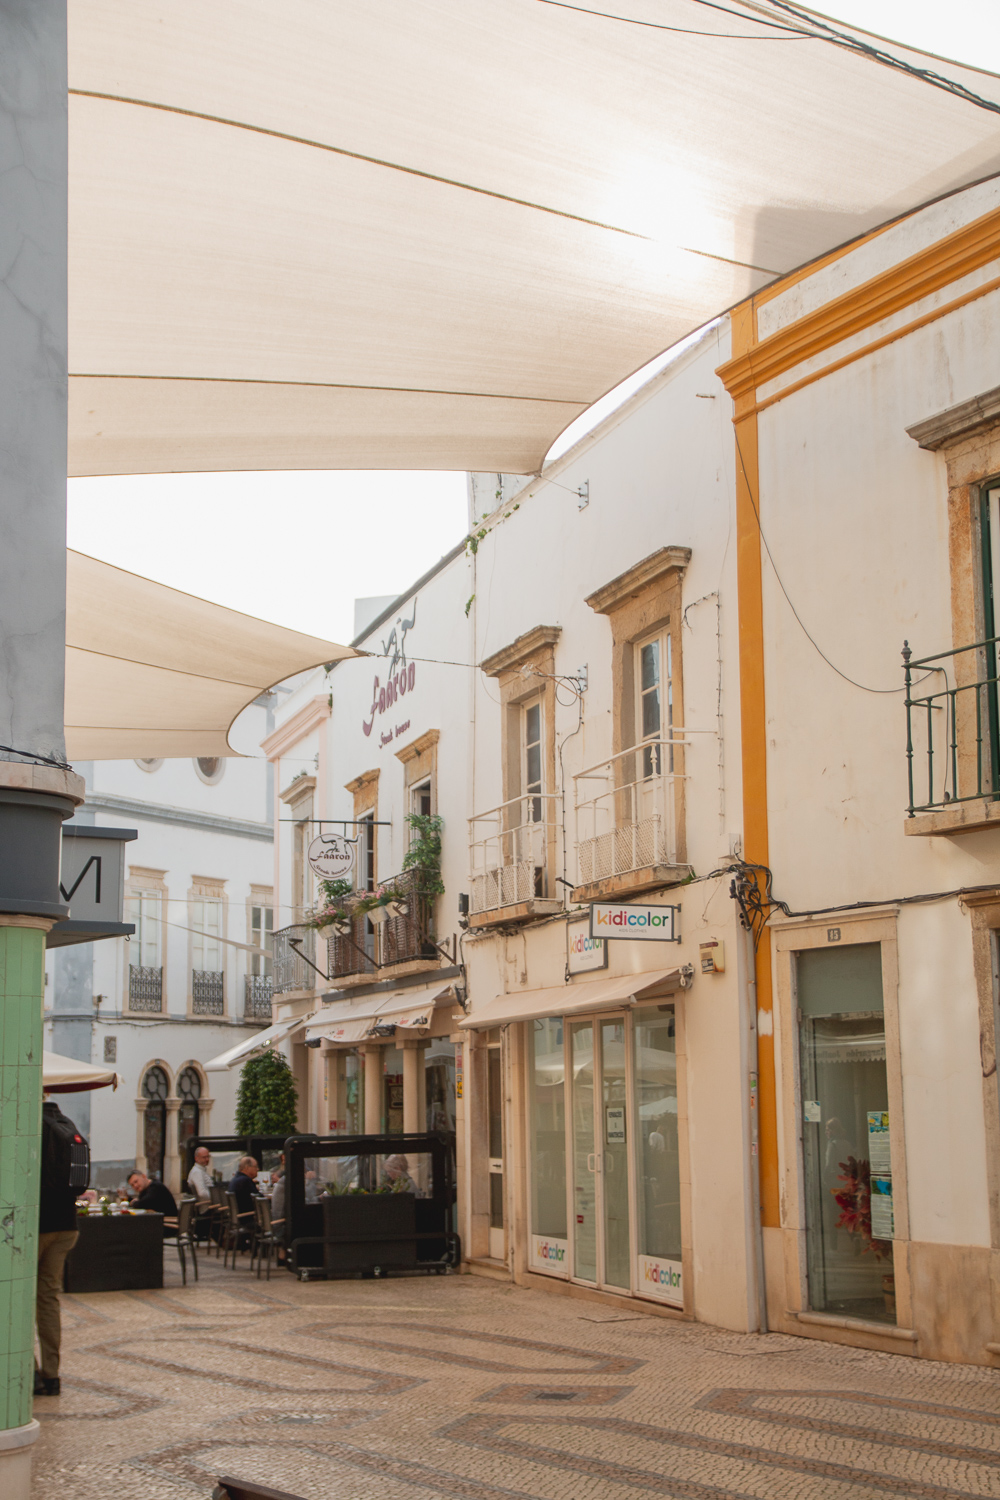 Exploring the streets of Faro in the Algarve, Portugal